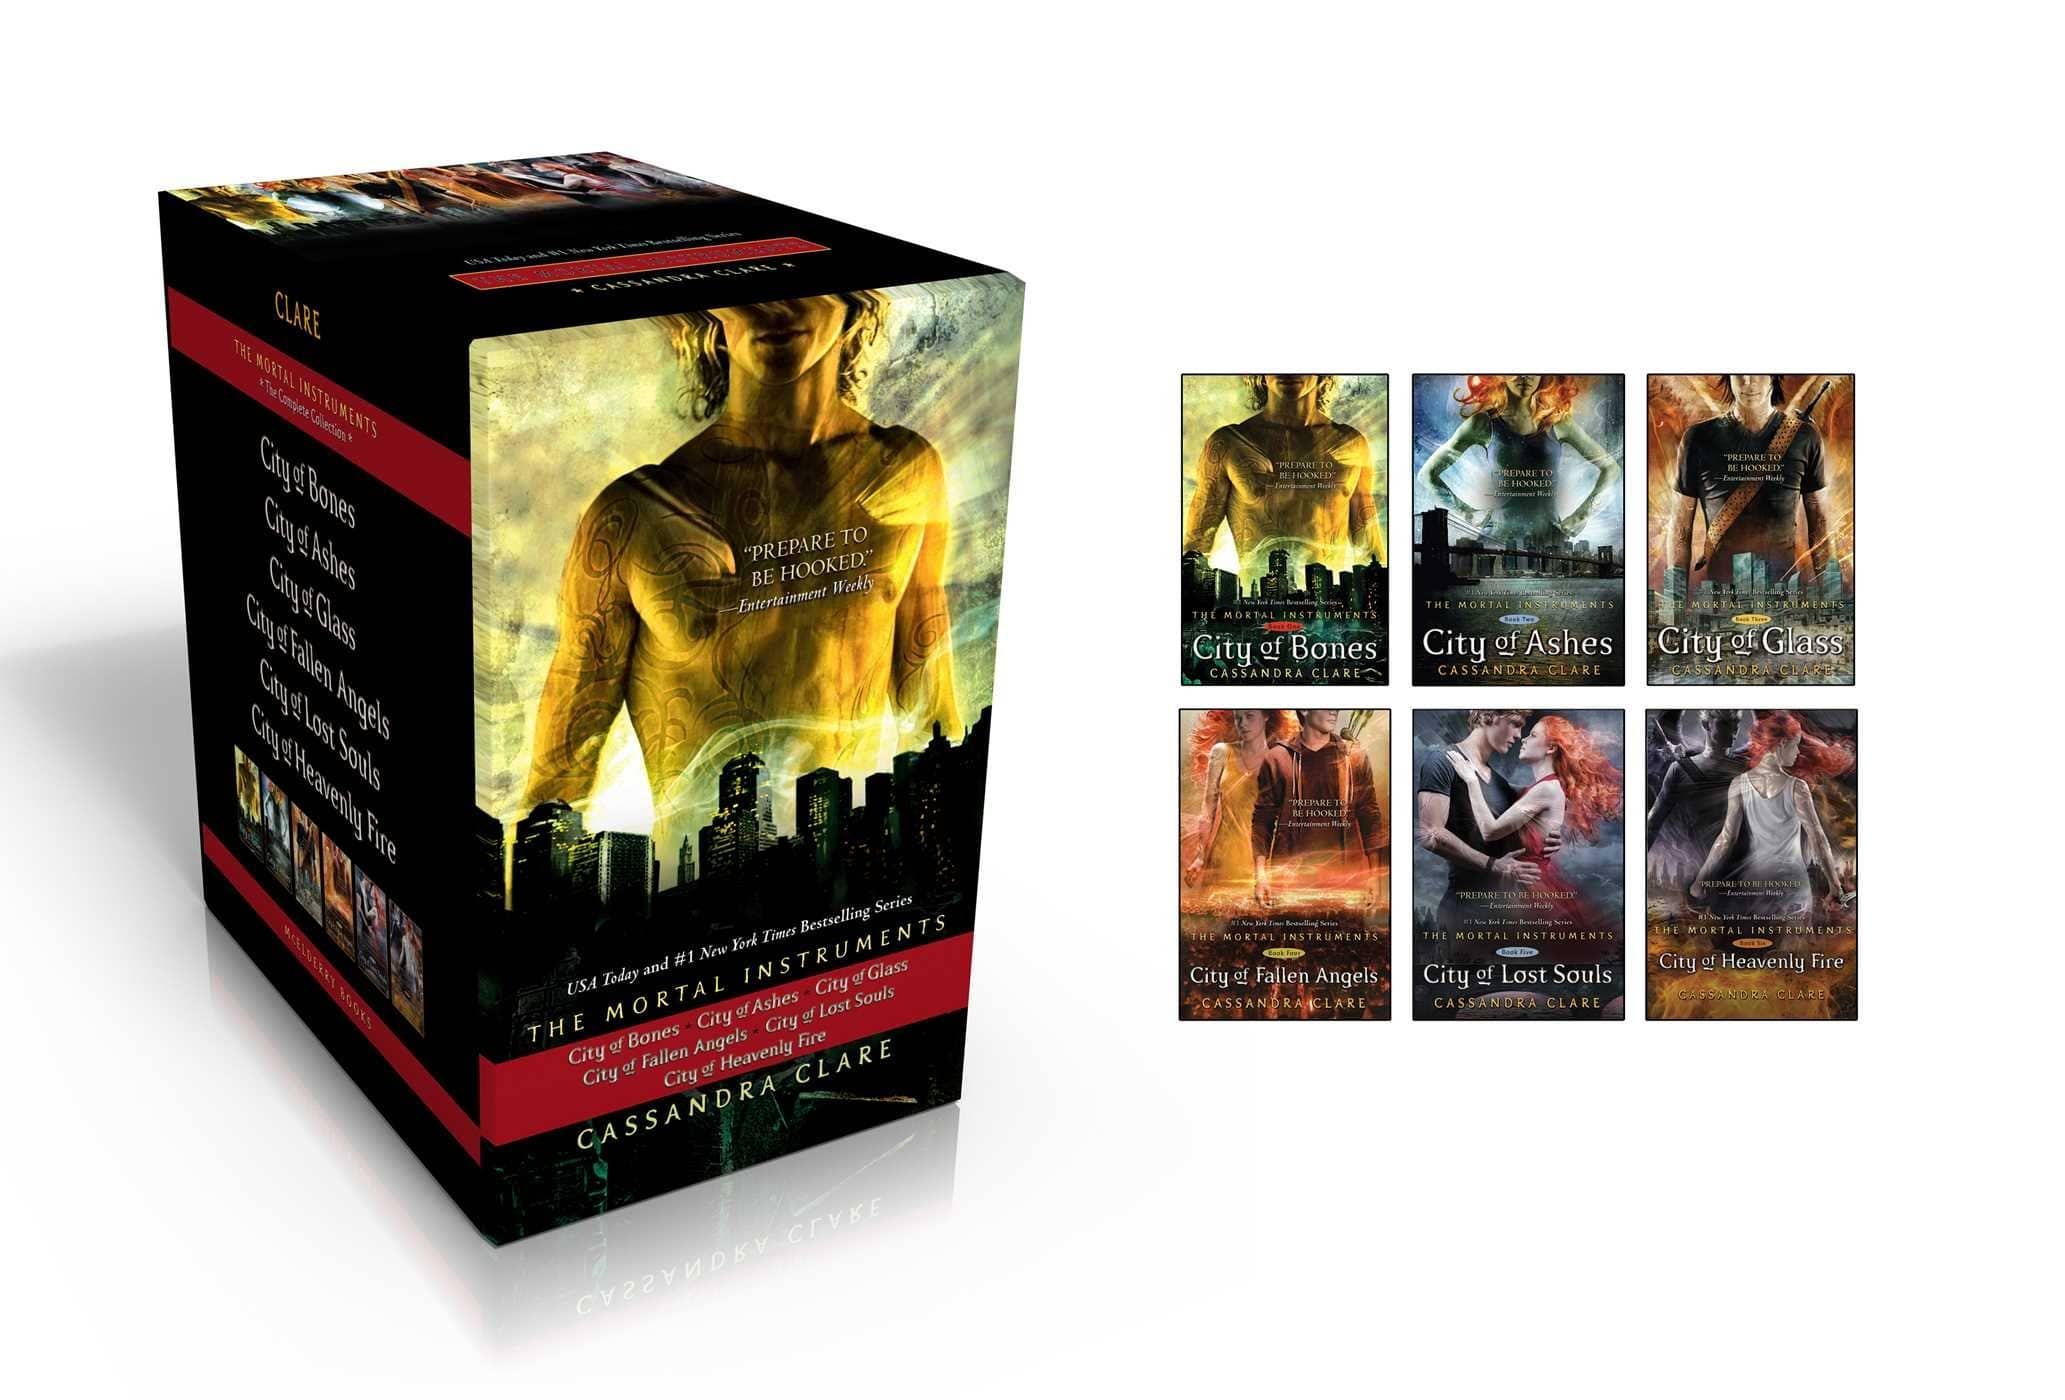 The Mortal Instruments Complete Collection (6 Hardcover Books) $46